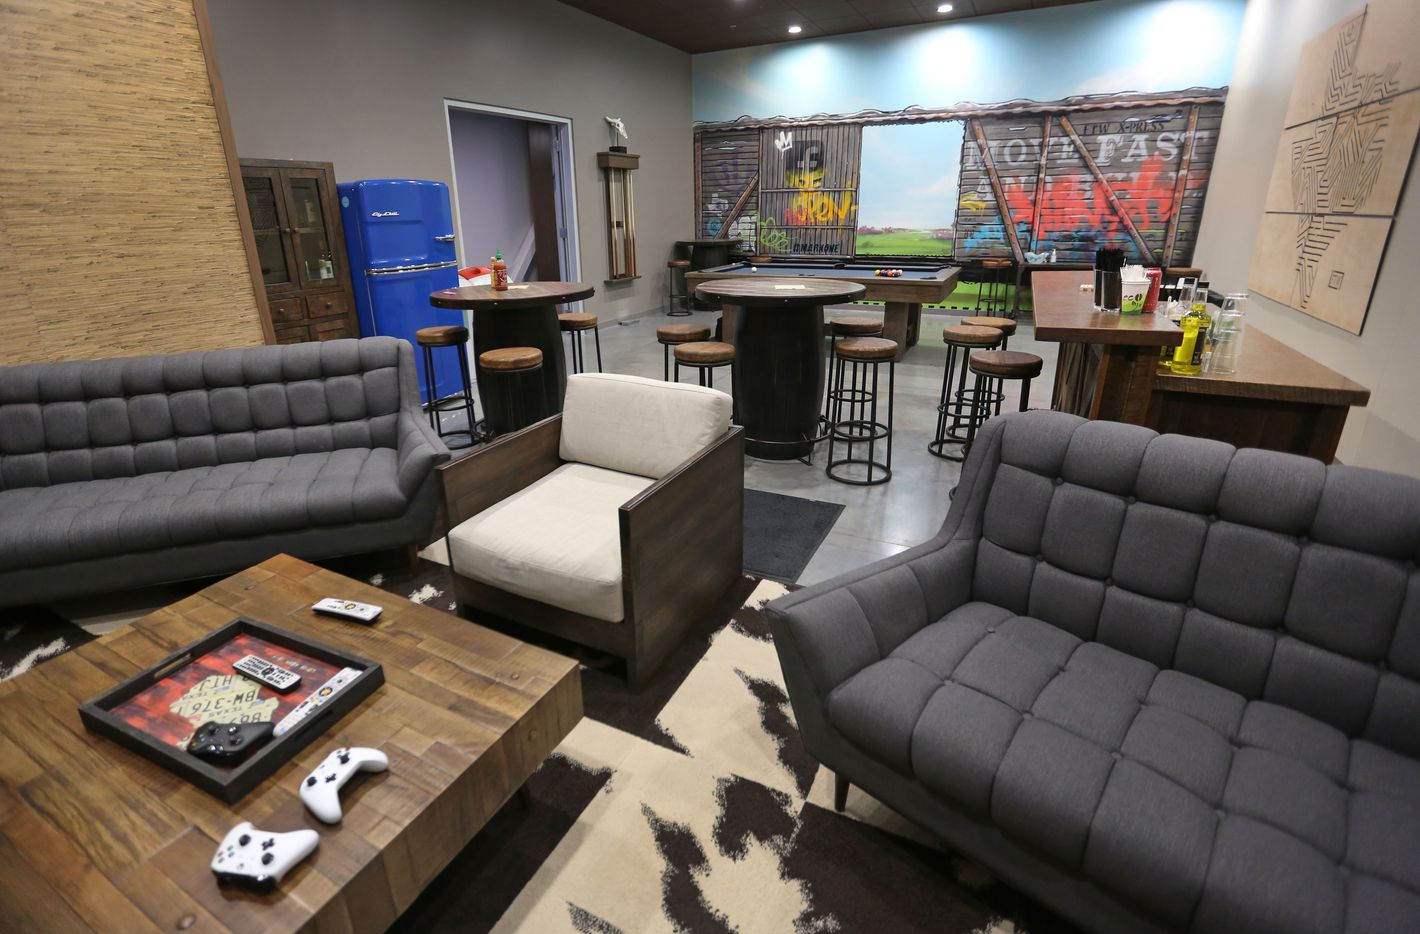 A look at the employee's break room during the grand opening and tour of FacebookÕs Fort Worth Data Center, photographed on Thursday, May 4, 2017. (Louis DeLuca/The Dallas Morning News)